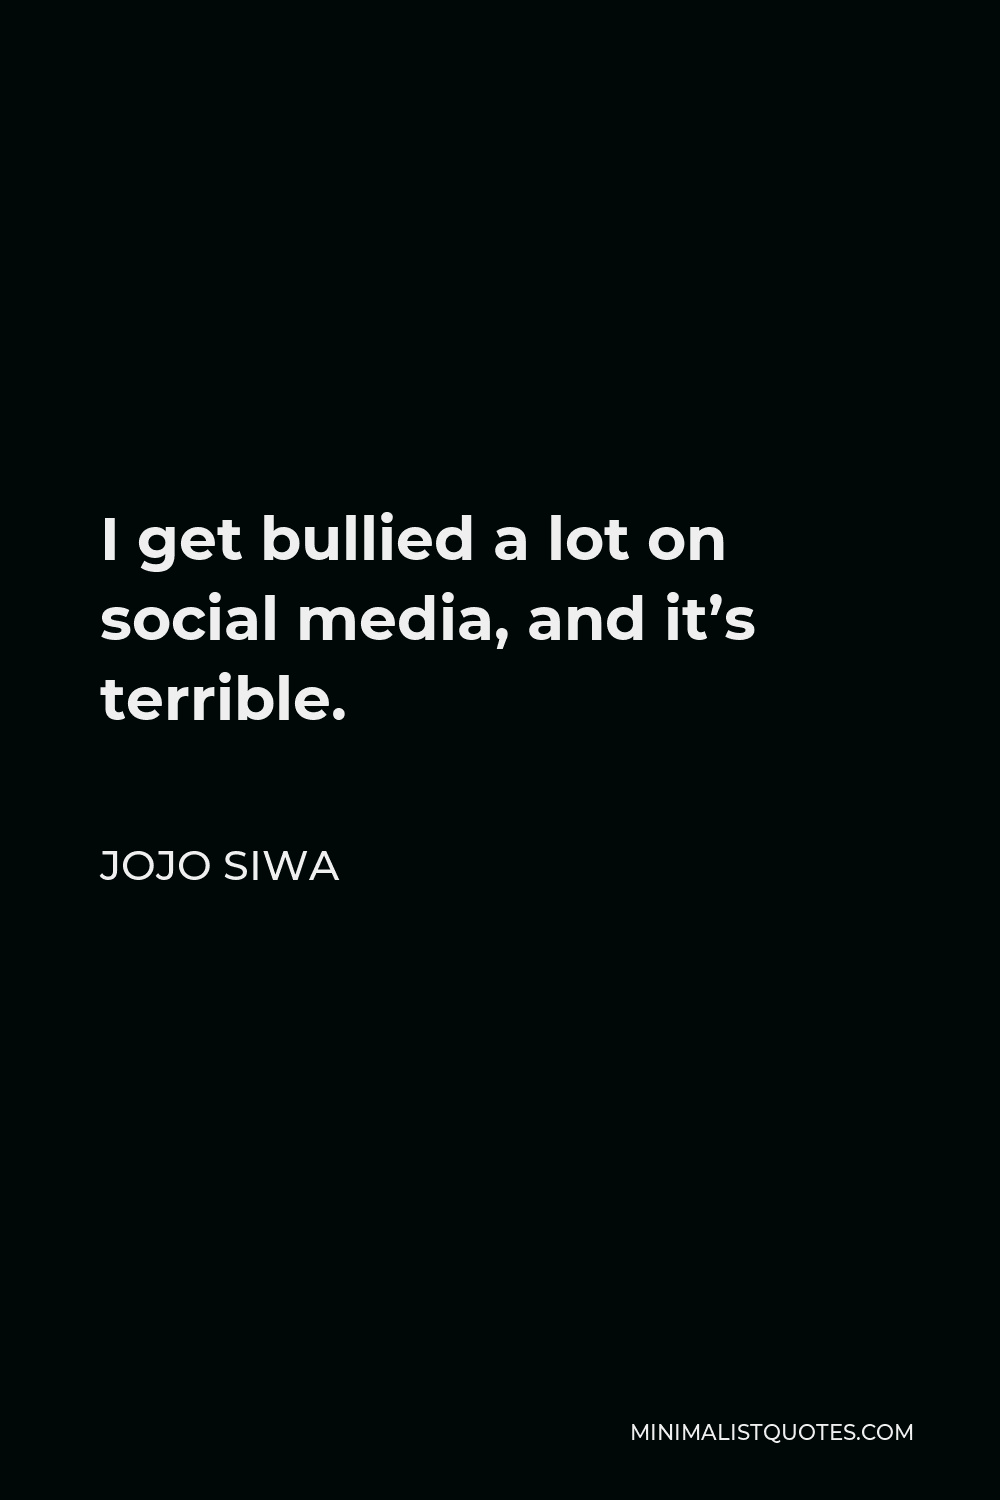 JoJo Siwa Quote - I get bullied a lot on social media, and it's terrible.